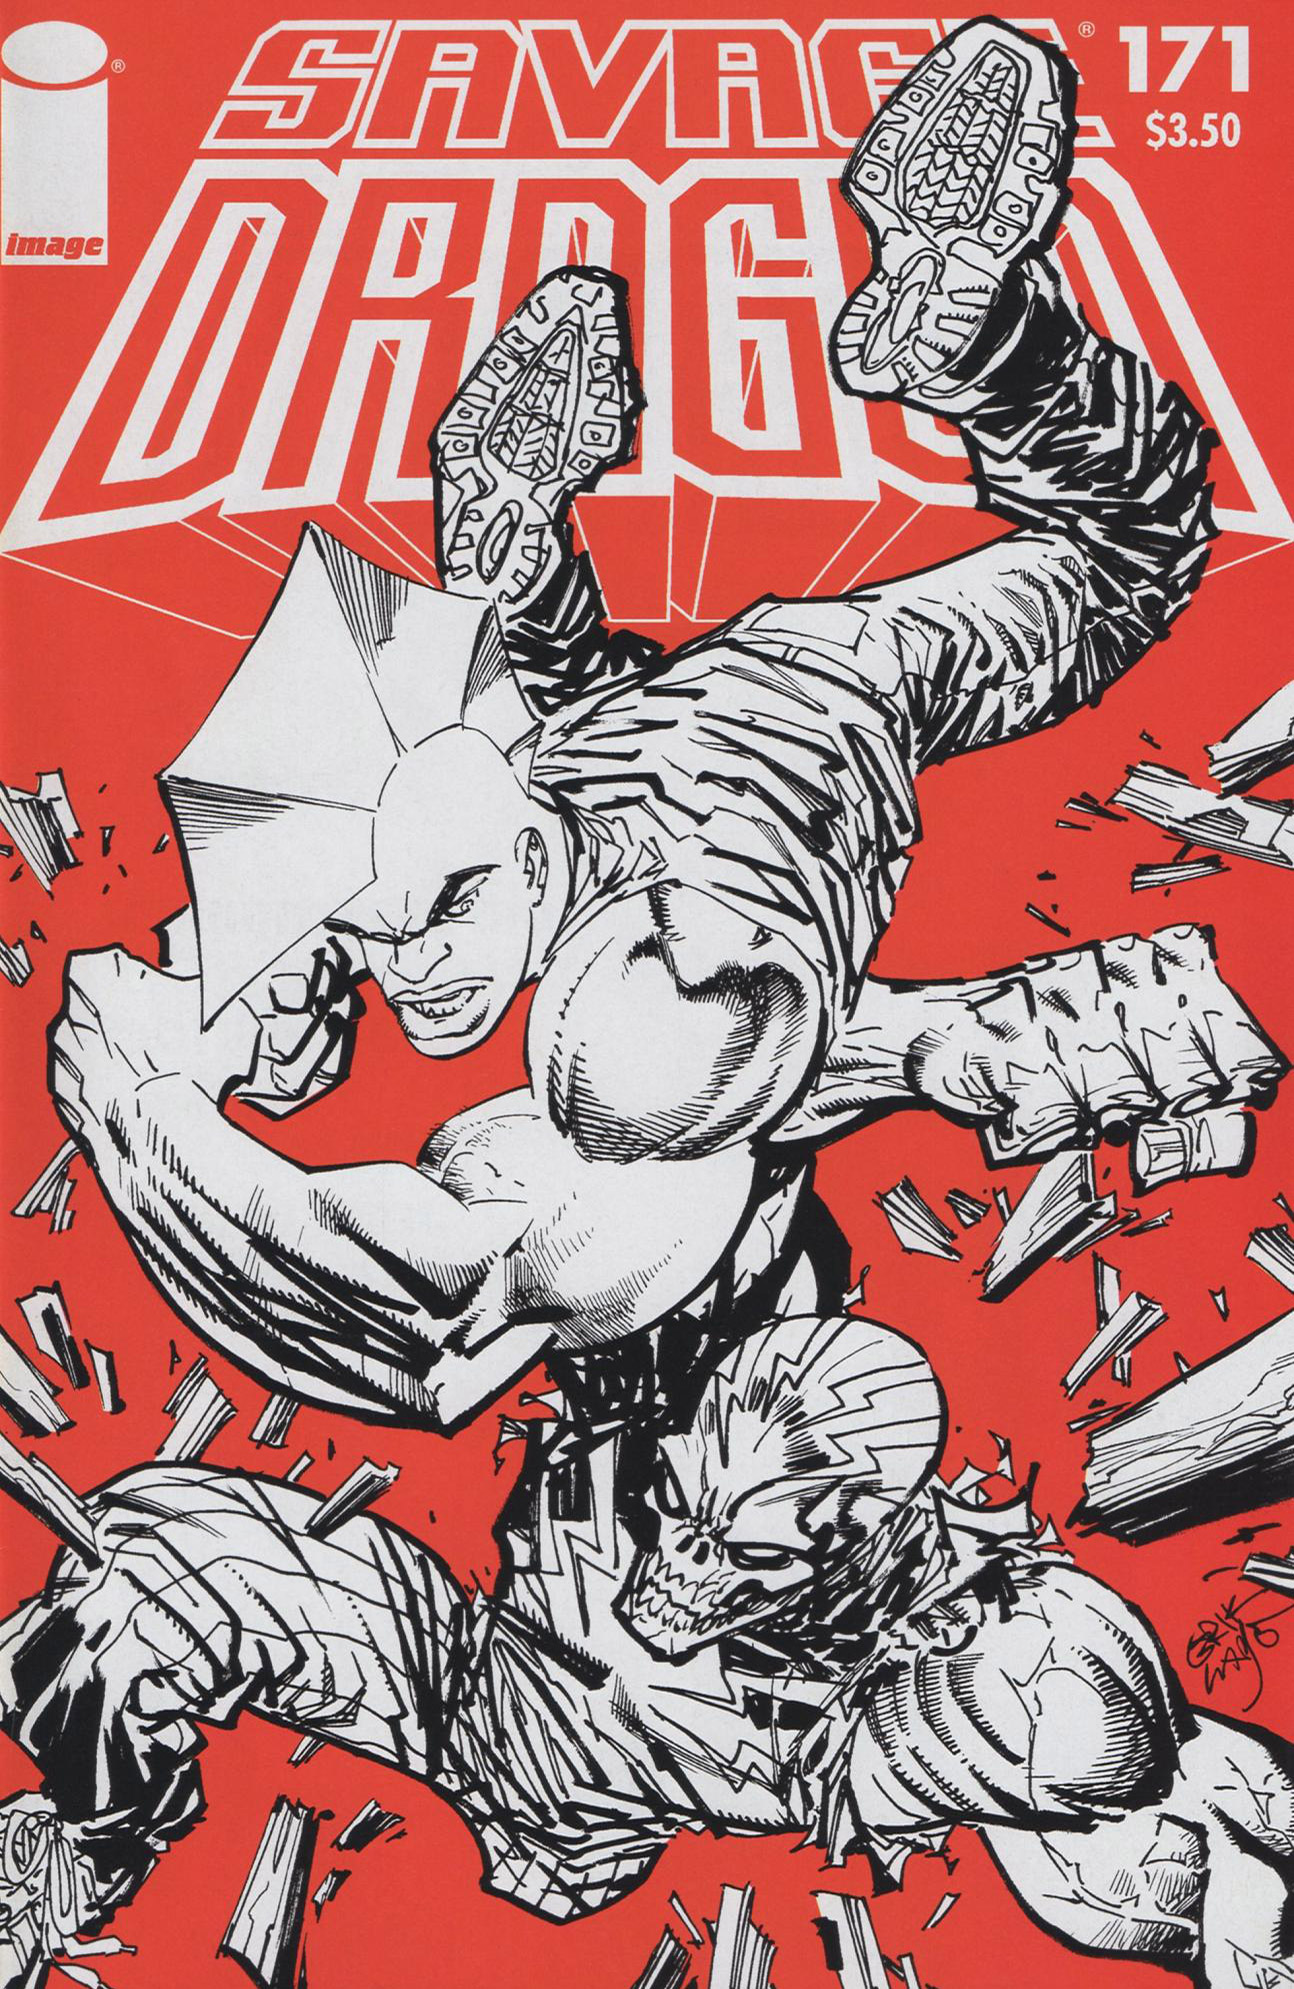 Cover Savage Dragon Vol.2 #171